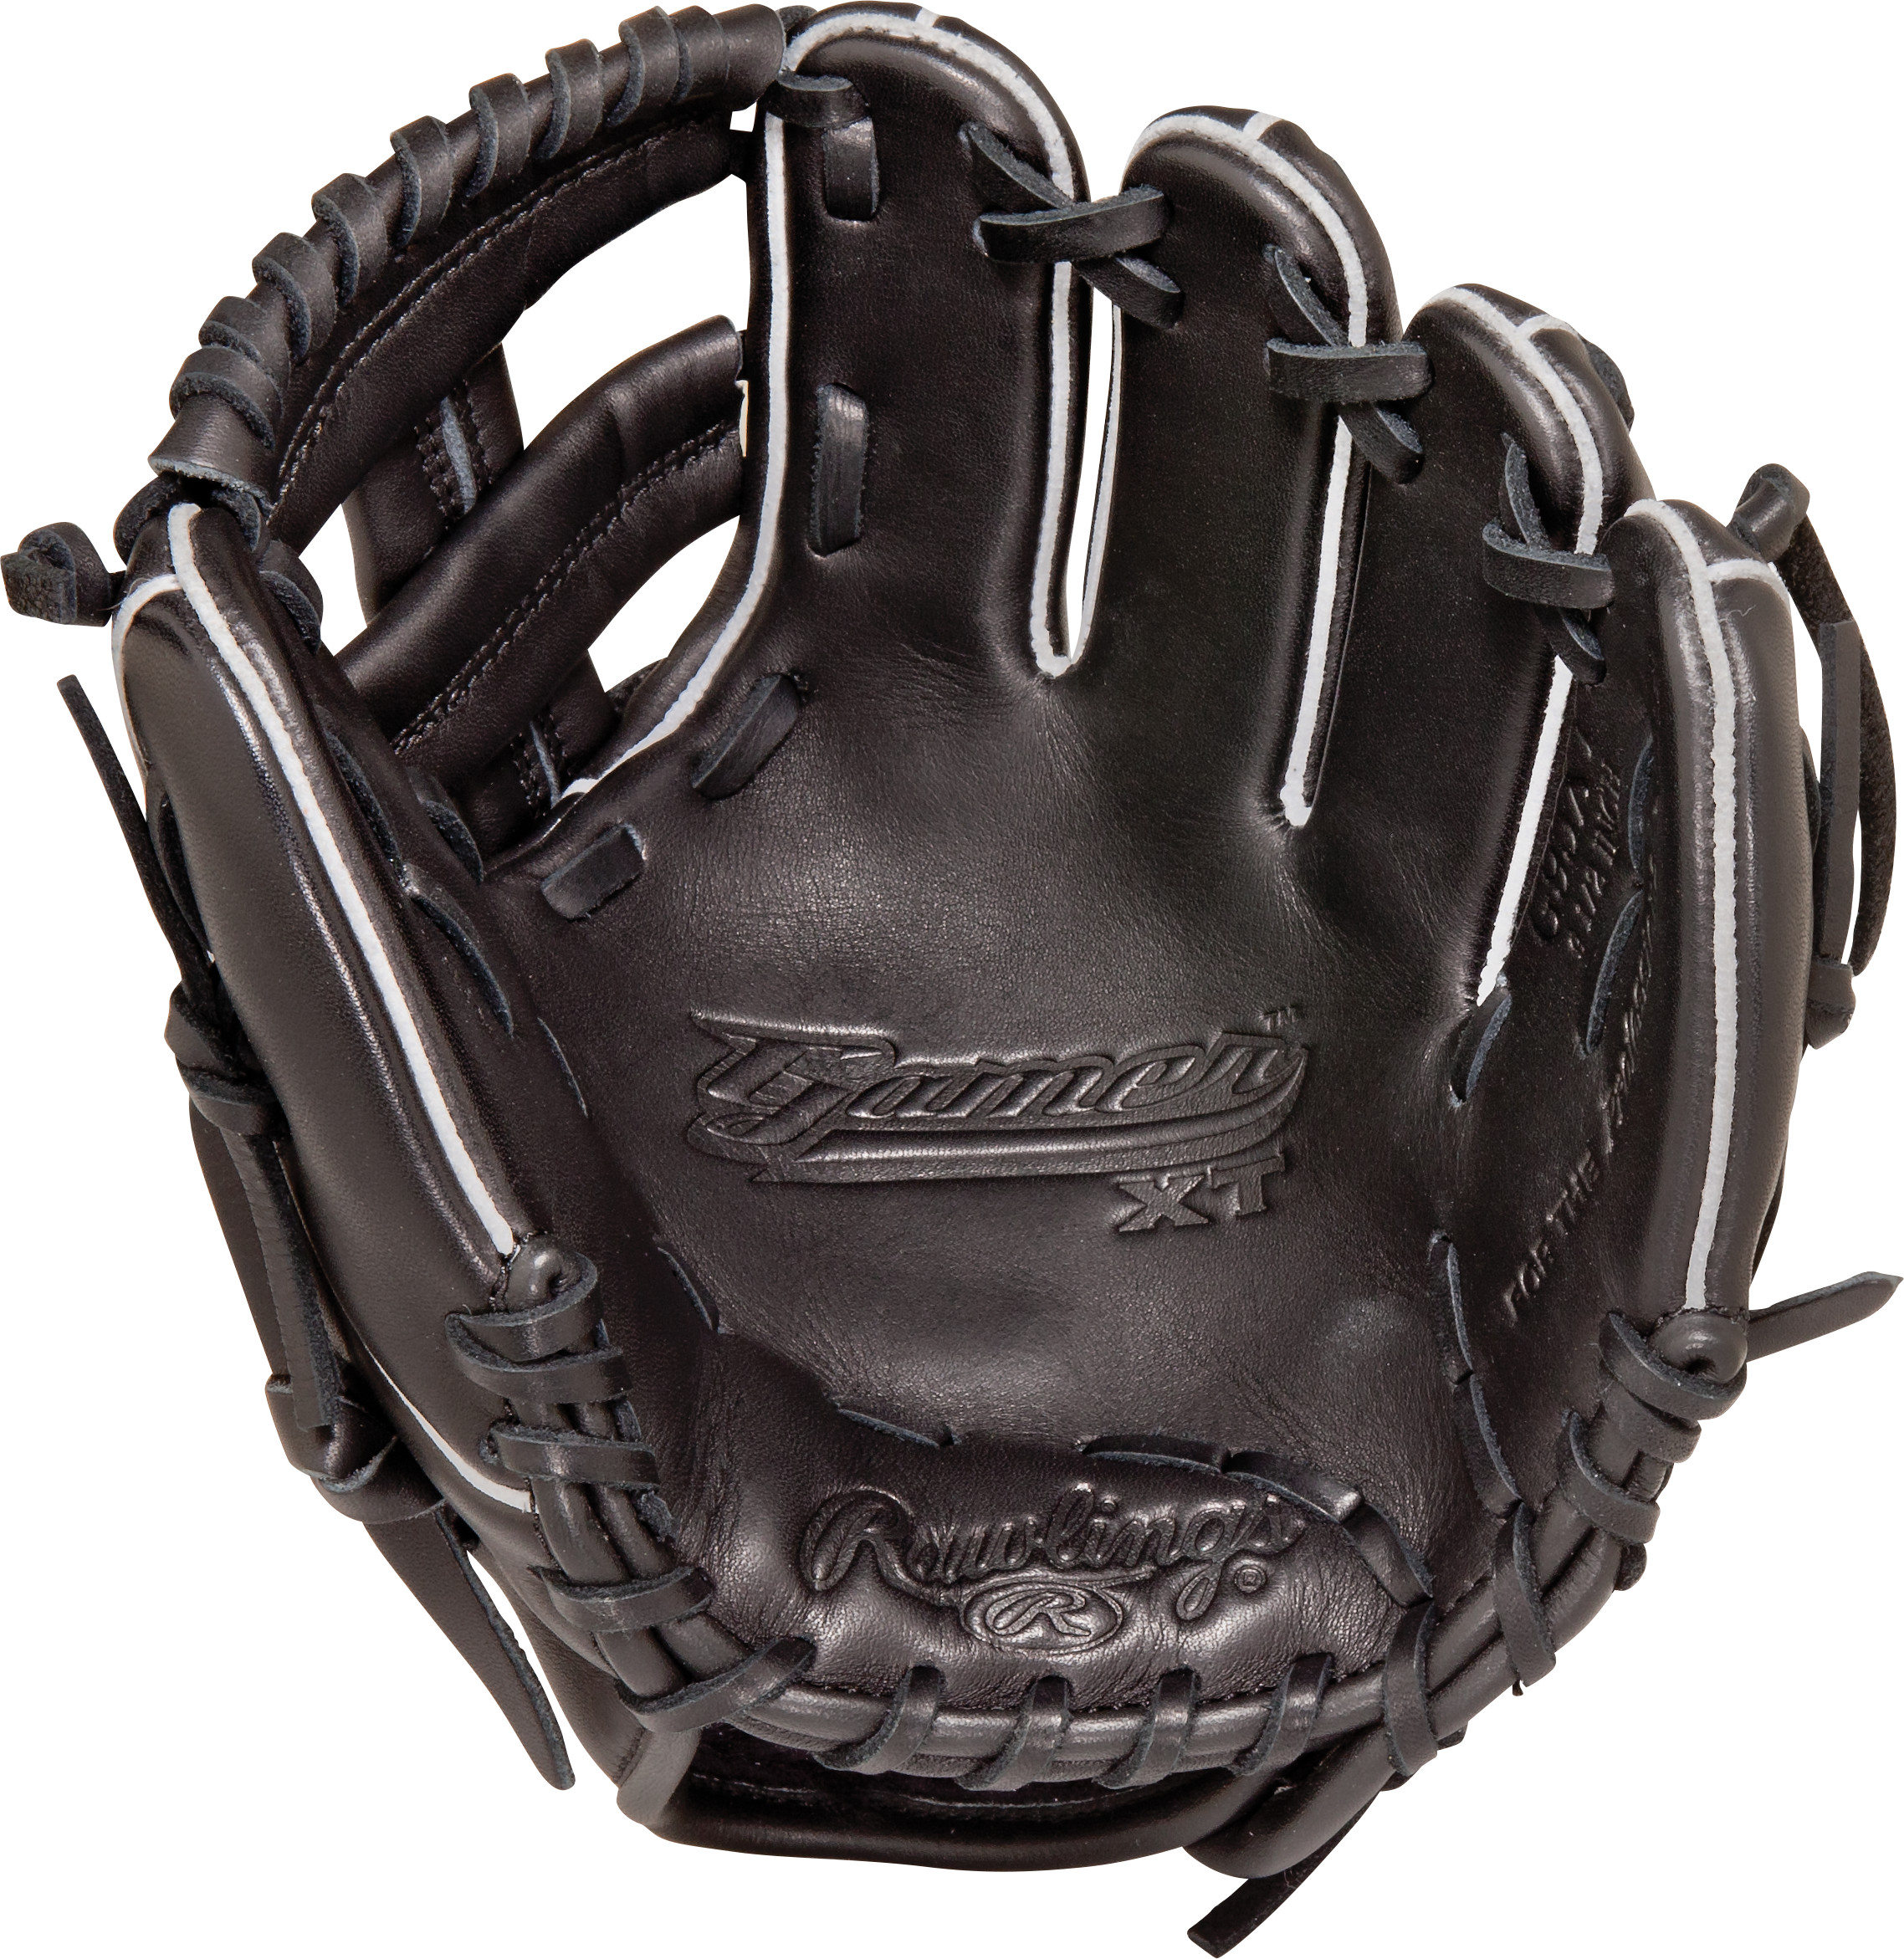 http://www.bestbatdeals.com/images/gloves/rawlings/G95XT_palm.jpg